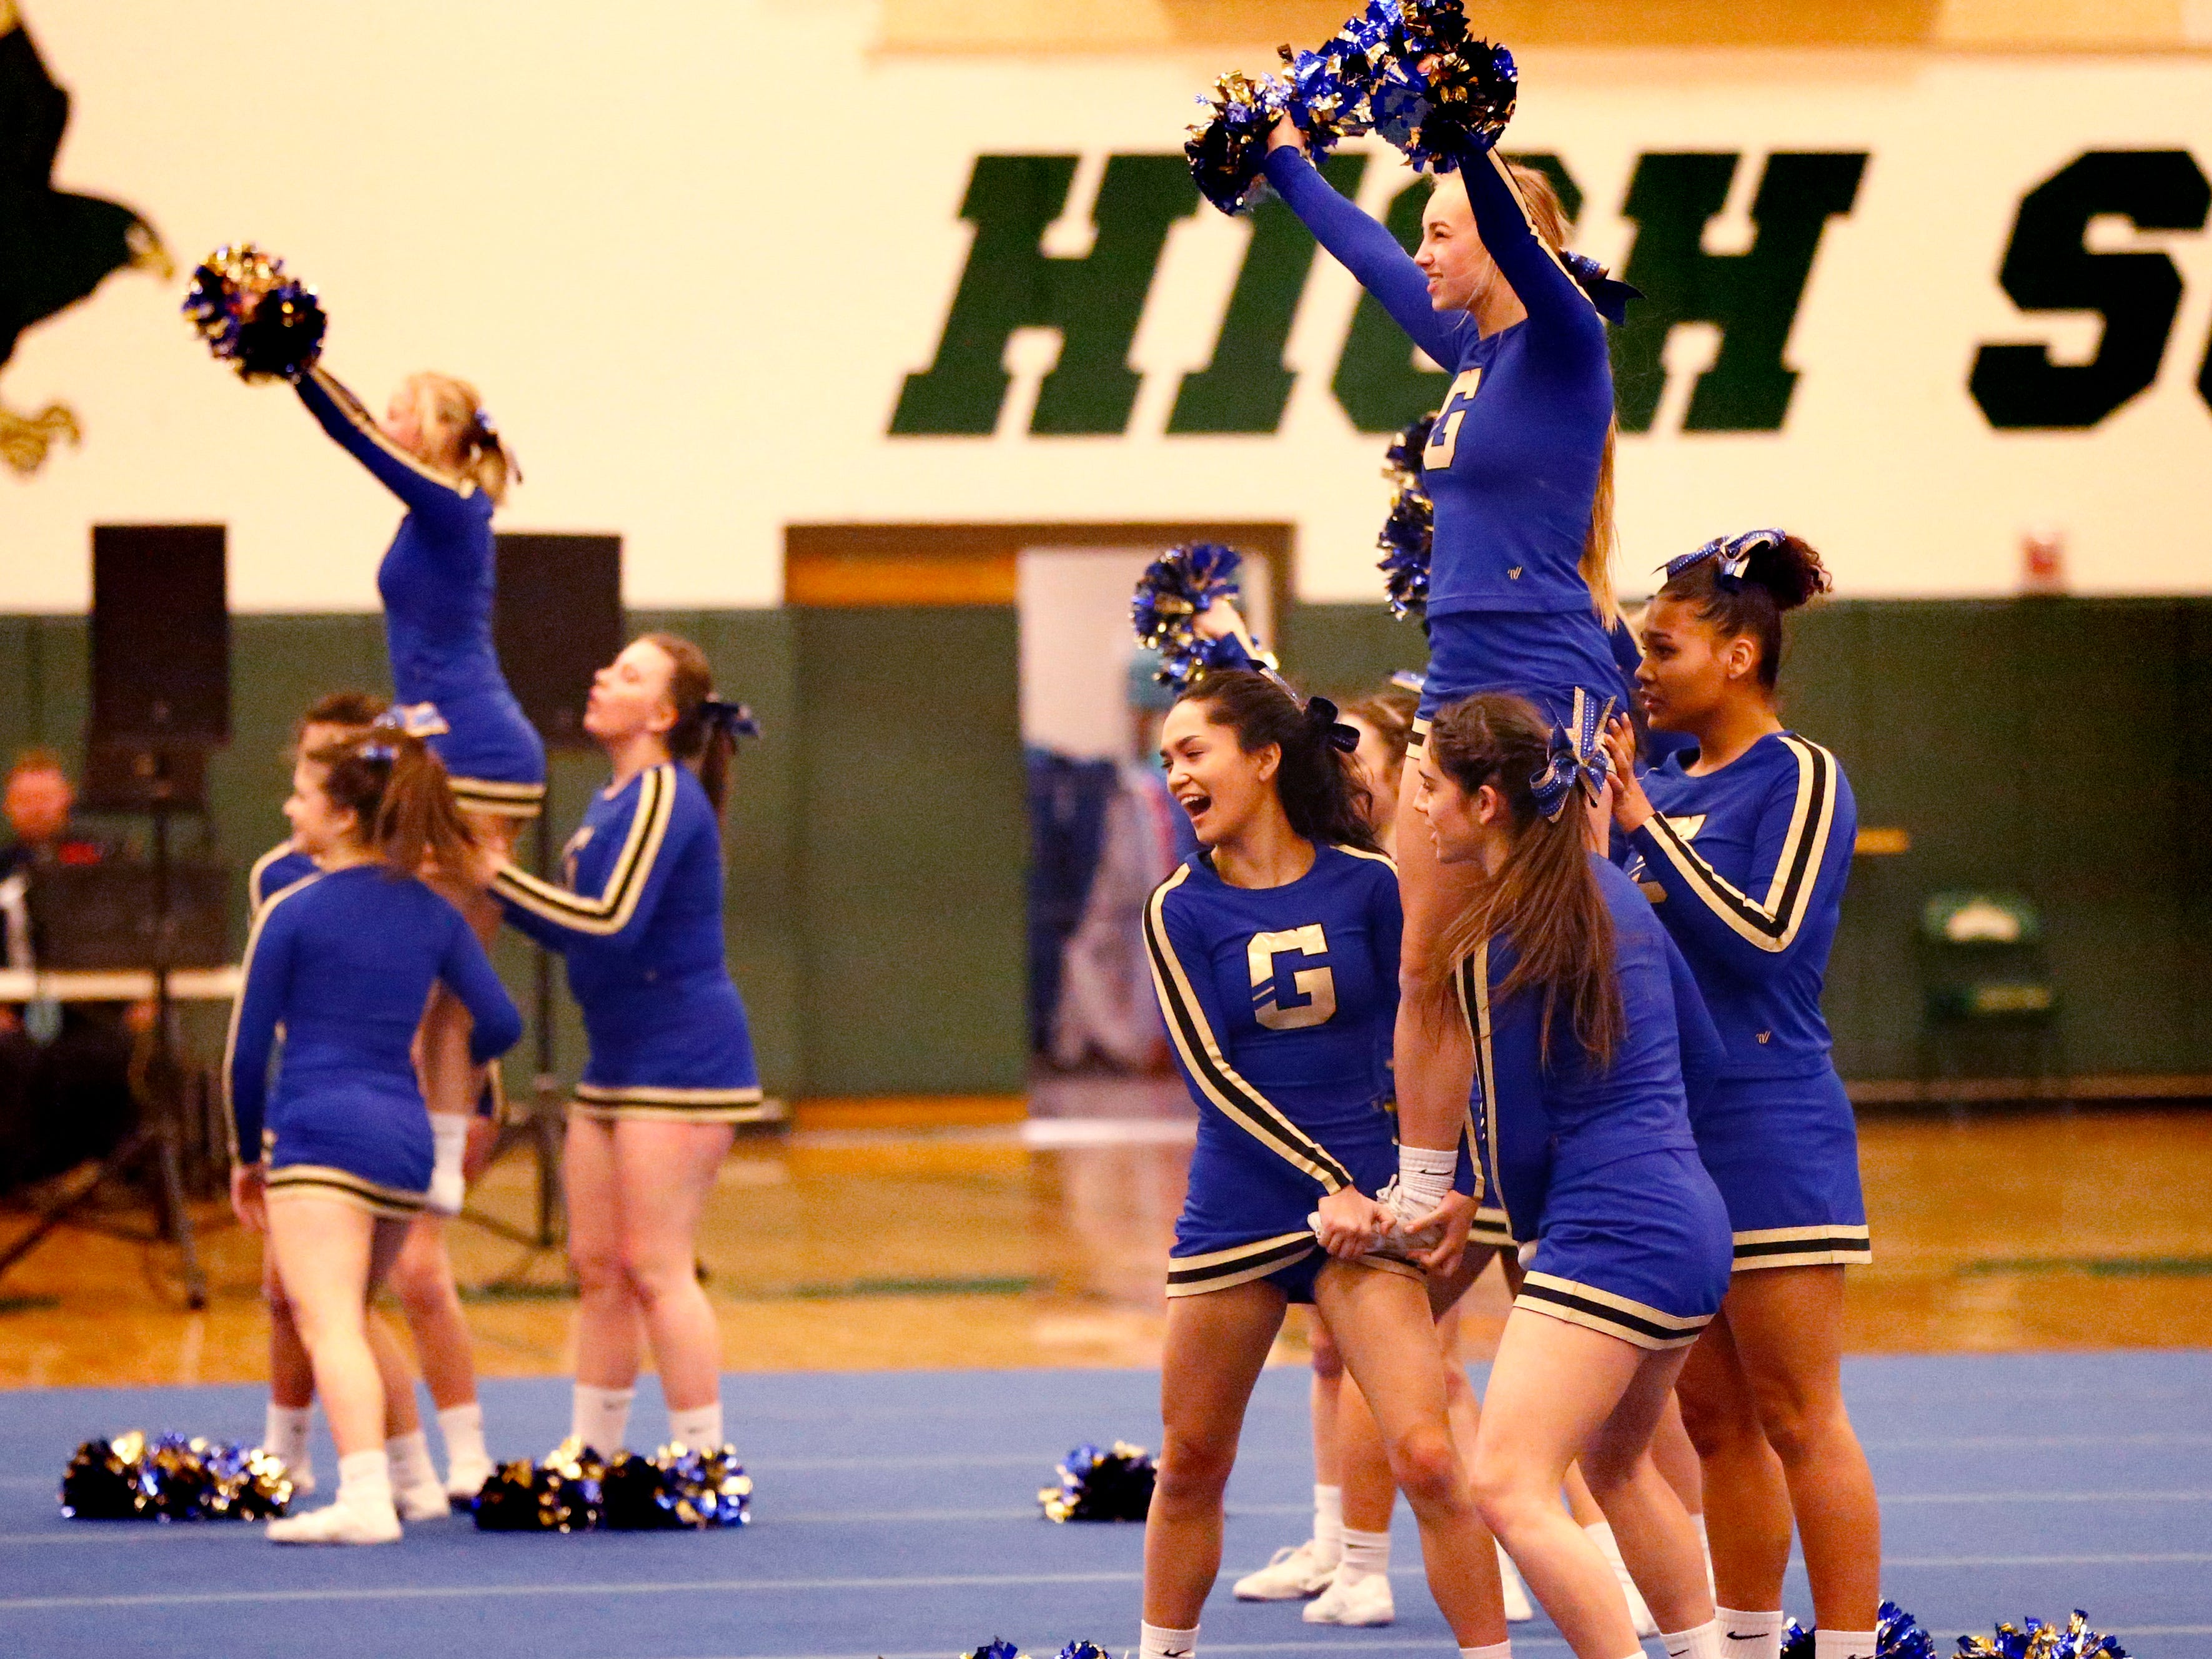 The Germantown High School team performs stacks while competing in the cheer dance division during the Greenfield Xtreme Cheer competition at Greenfield High School on Jan. 12 that drew 56 teams competing in 13 divisions.